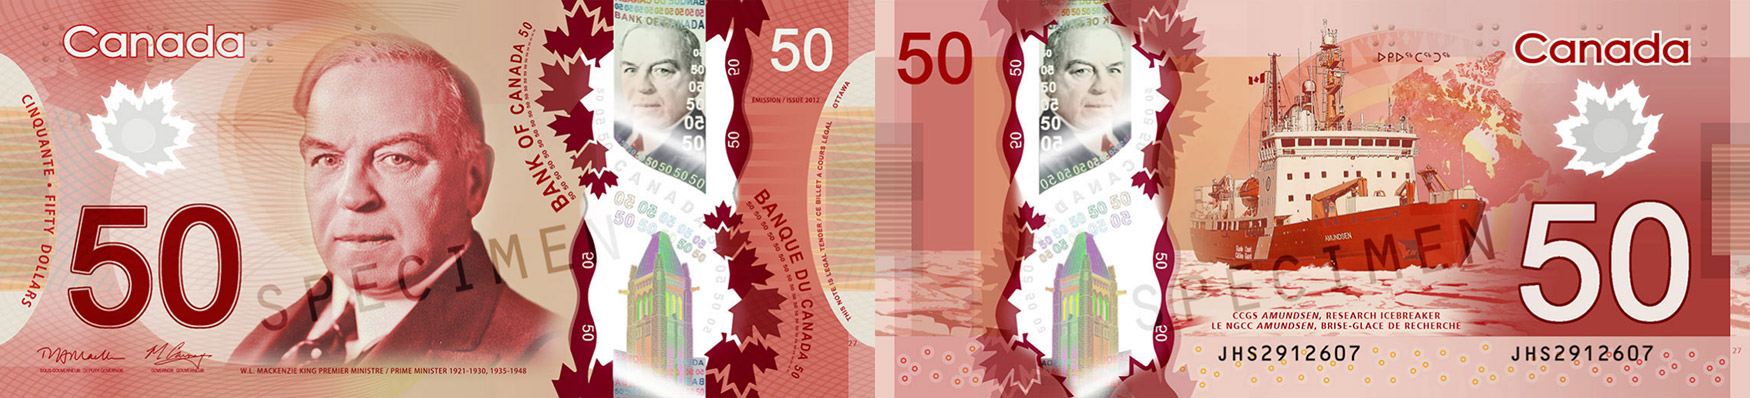 50 dollars 2011 to 2016 - Canada Banknote